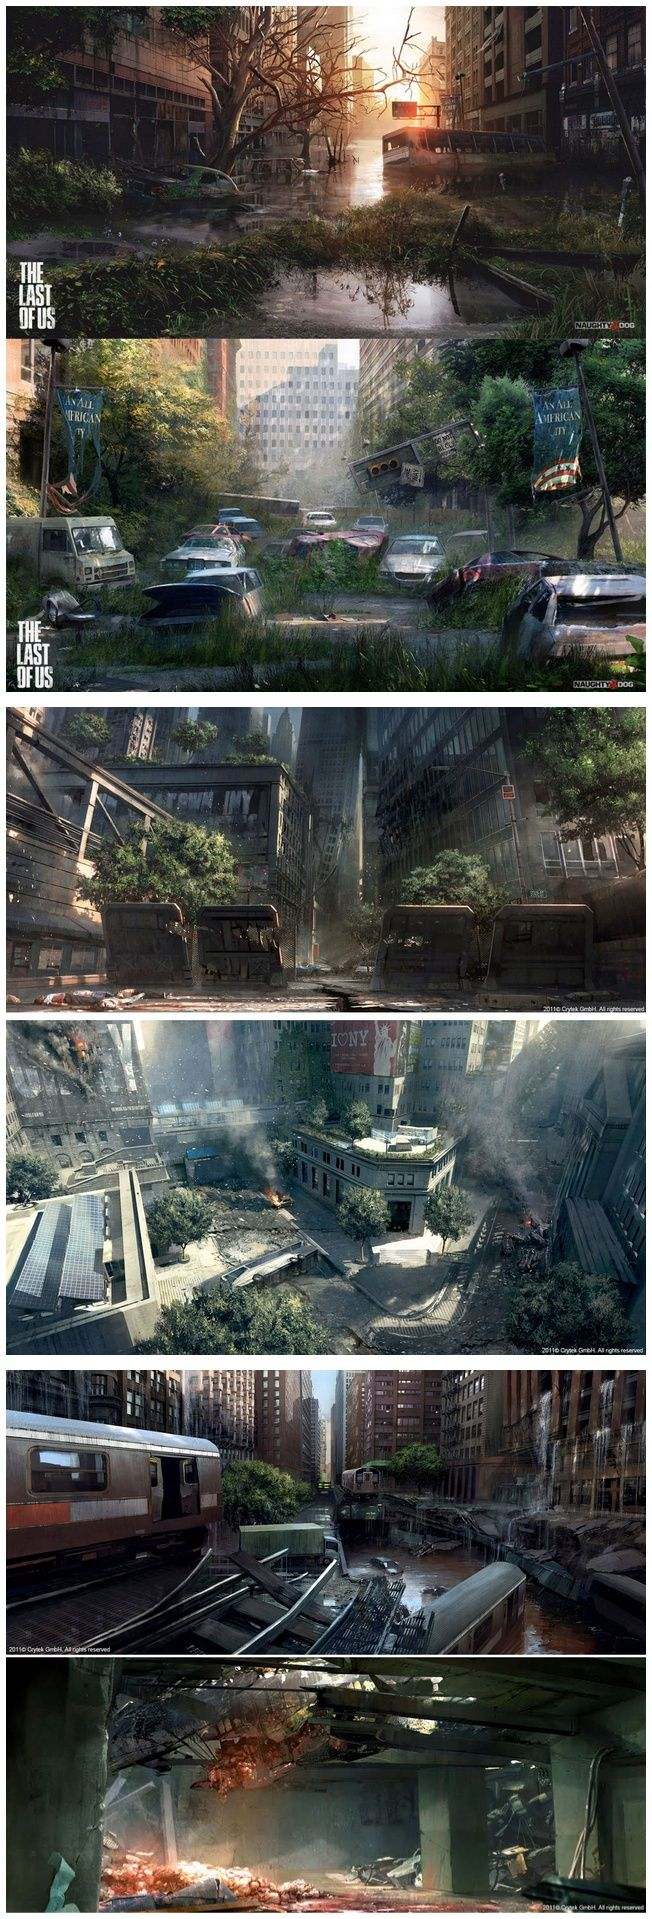 "Plants and animals will take over, and things left behind when people move will be overgrown. We will see real ""ghost towns"" where no one lives and to where no one travels. These are obvious consequences....For the full story read A Journey into the Multiverse - Level 4 papers http://wespenre.com/index.htm"